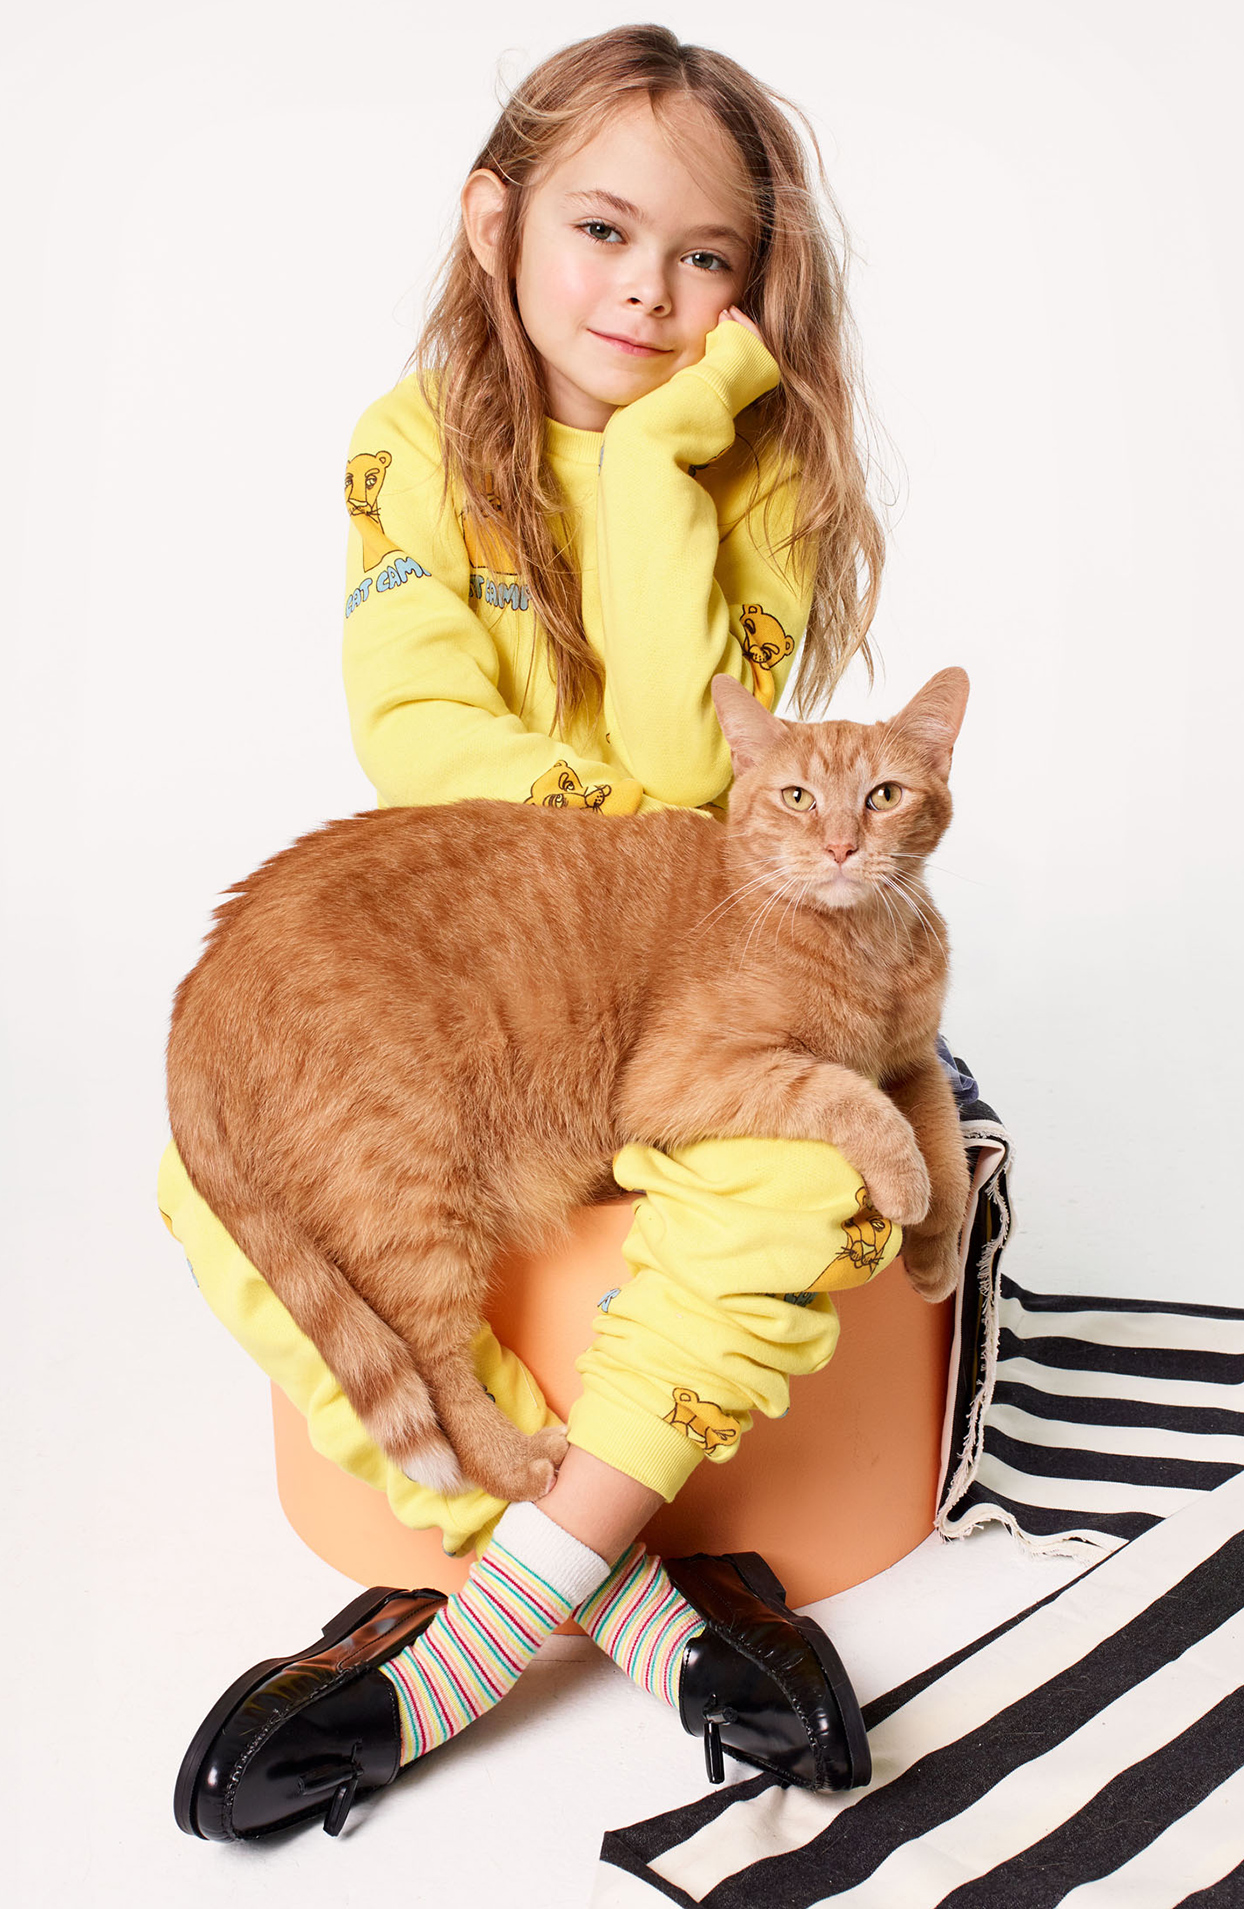 girl sitting with cat on her lap